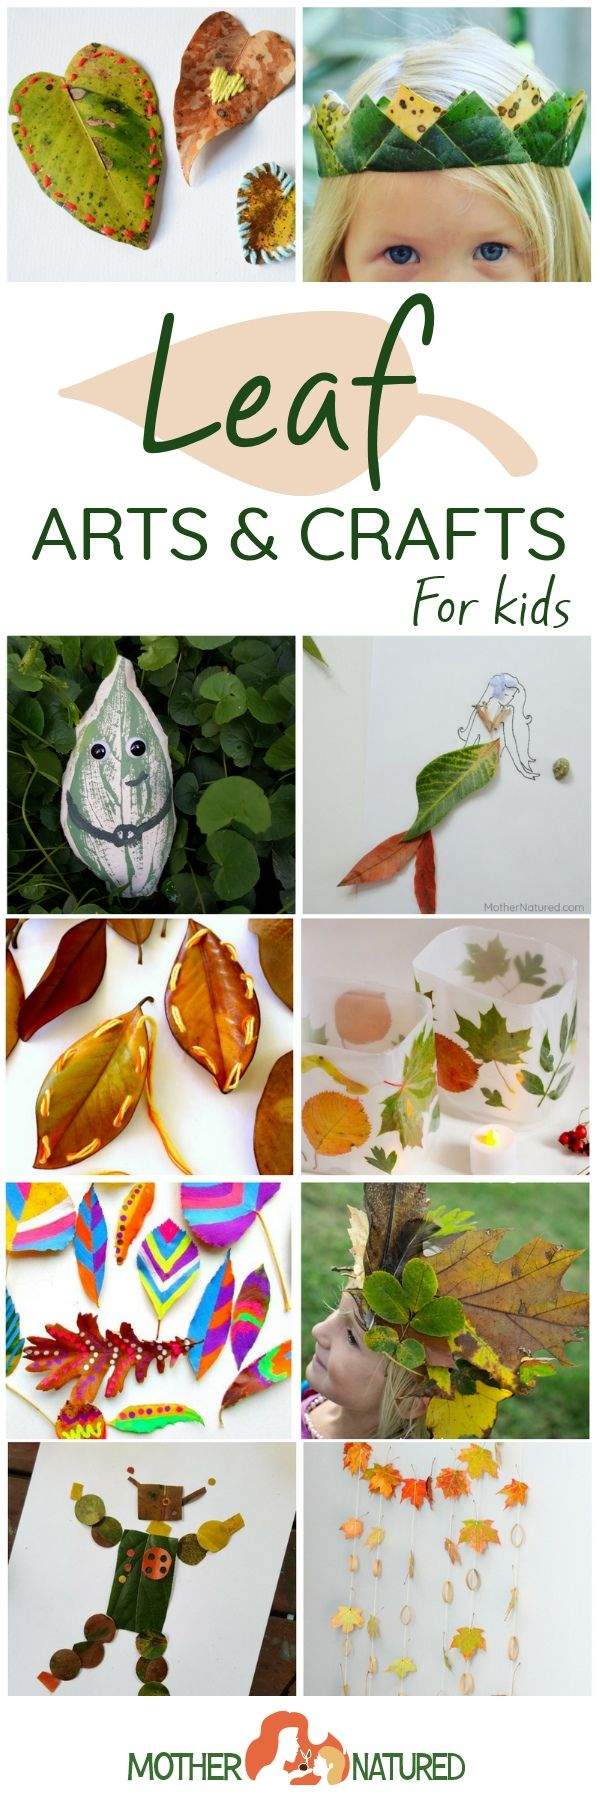 Leaf crafts for kids | Fall crafts for kids